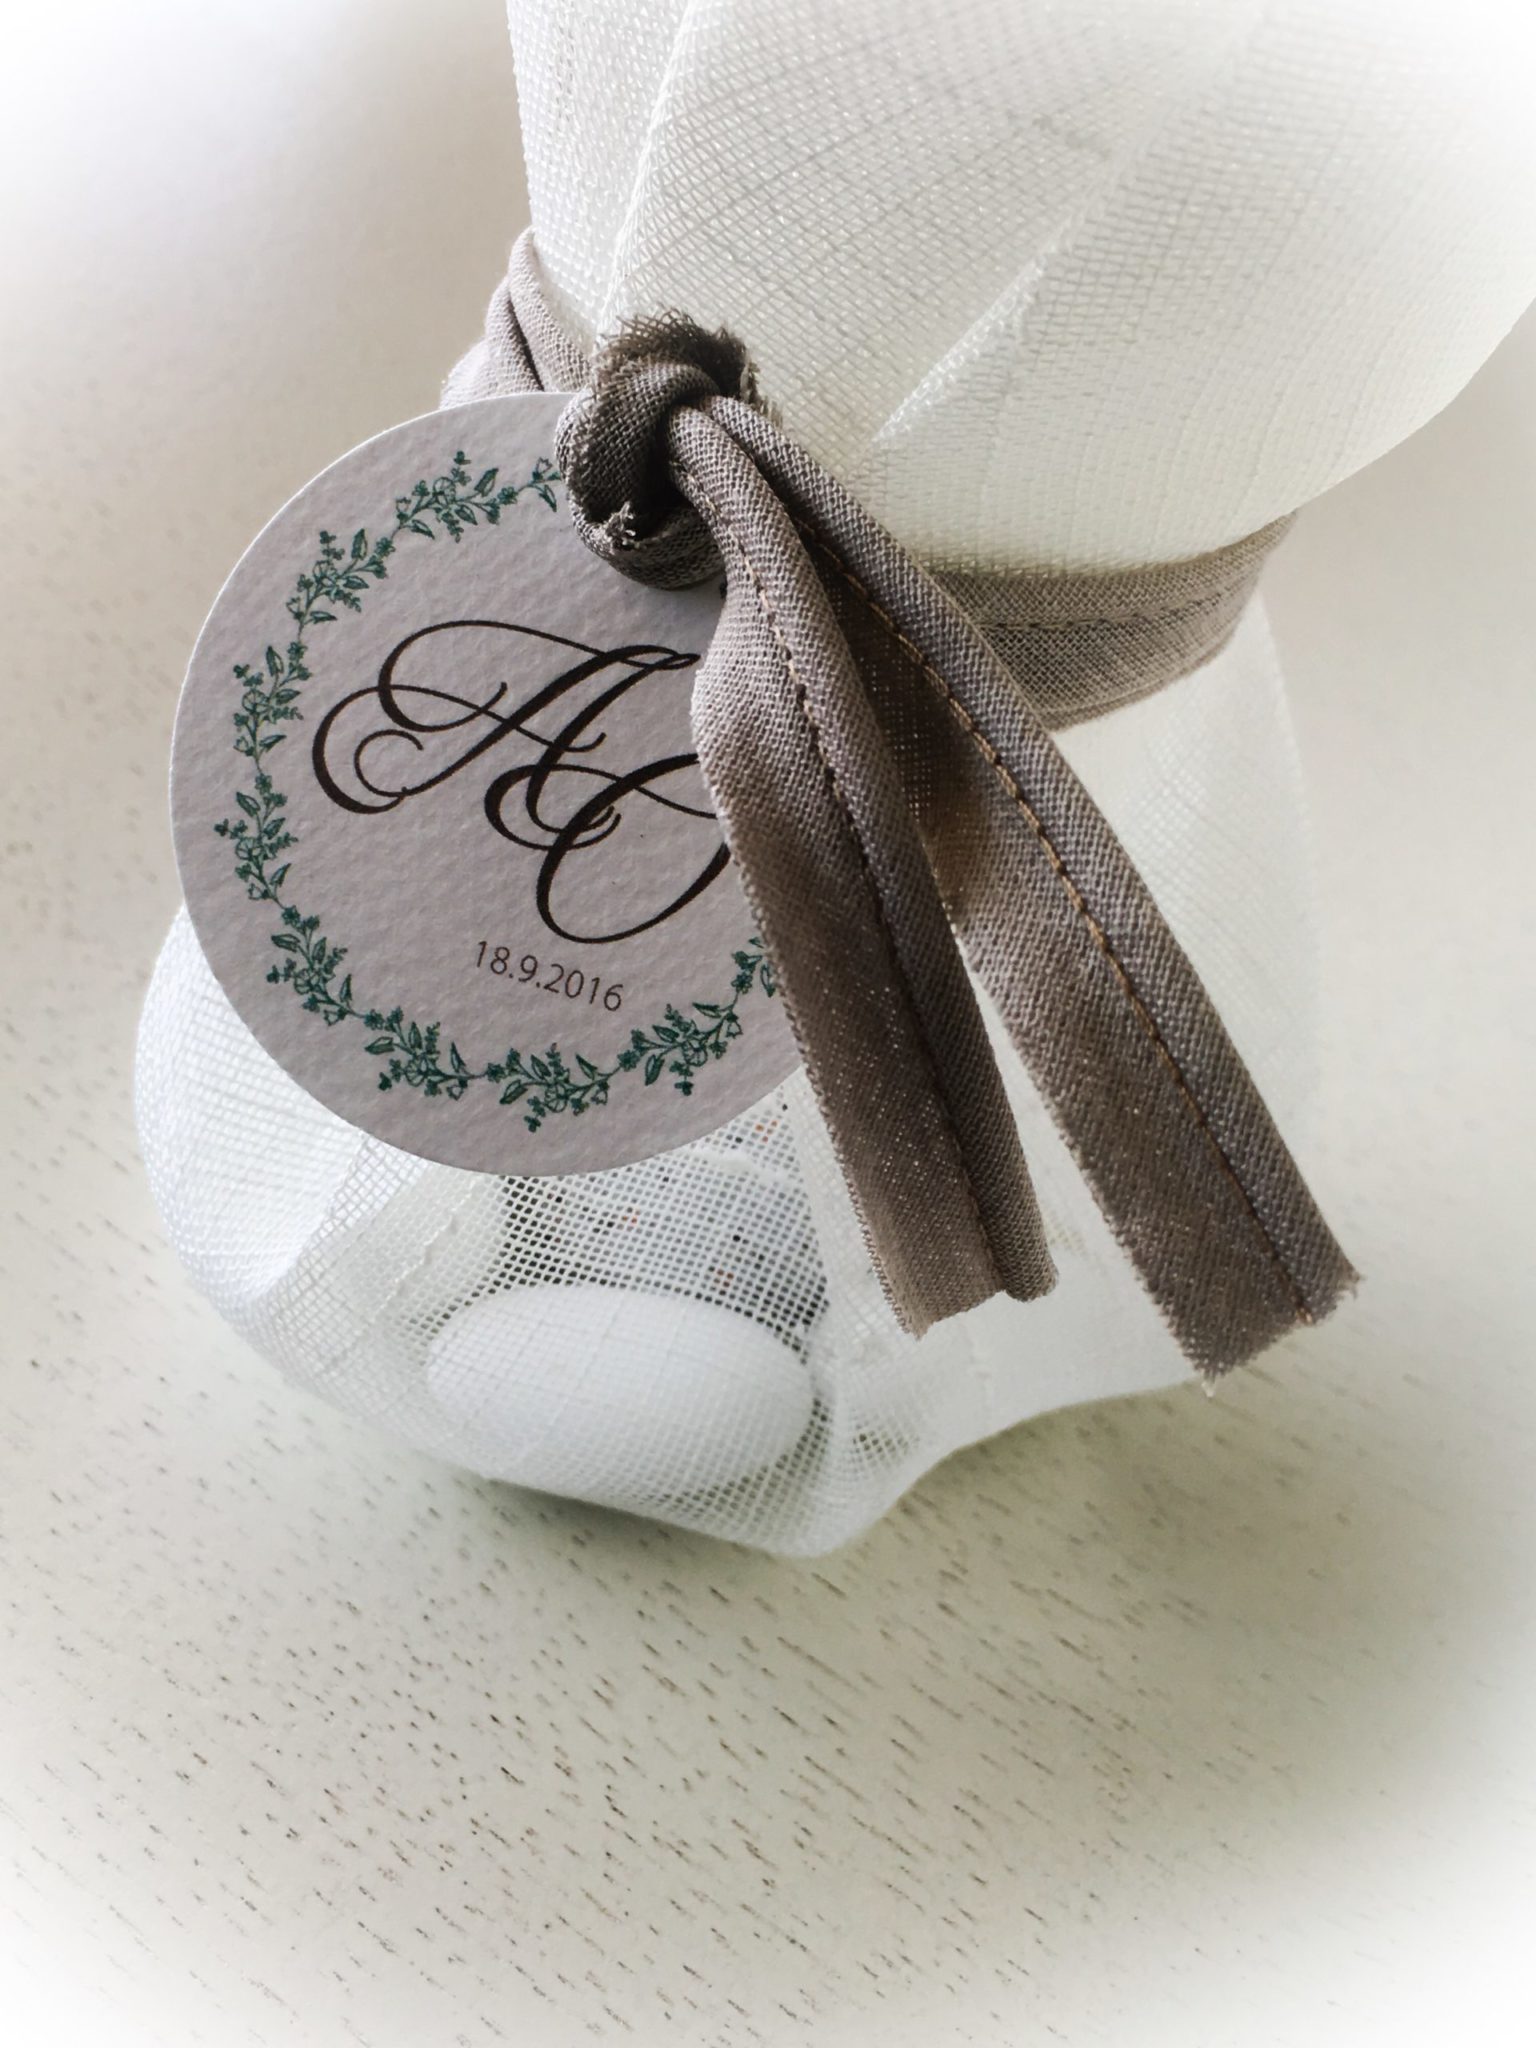 Chic And Simple-wedding favor-close up